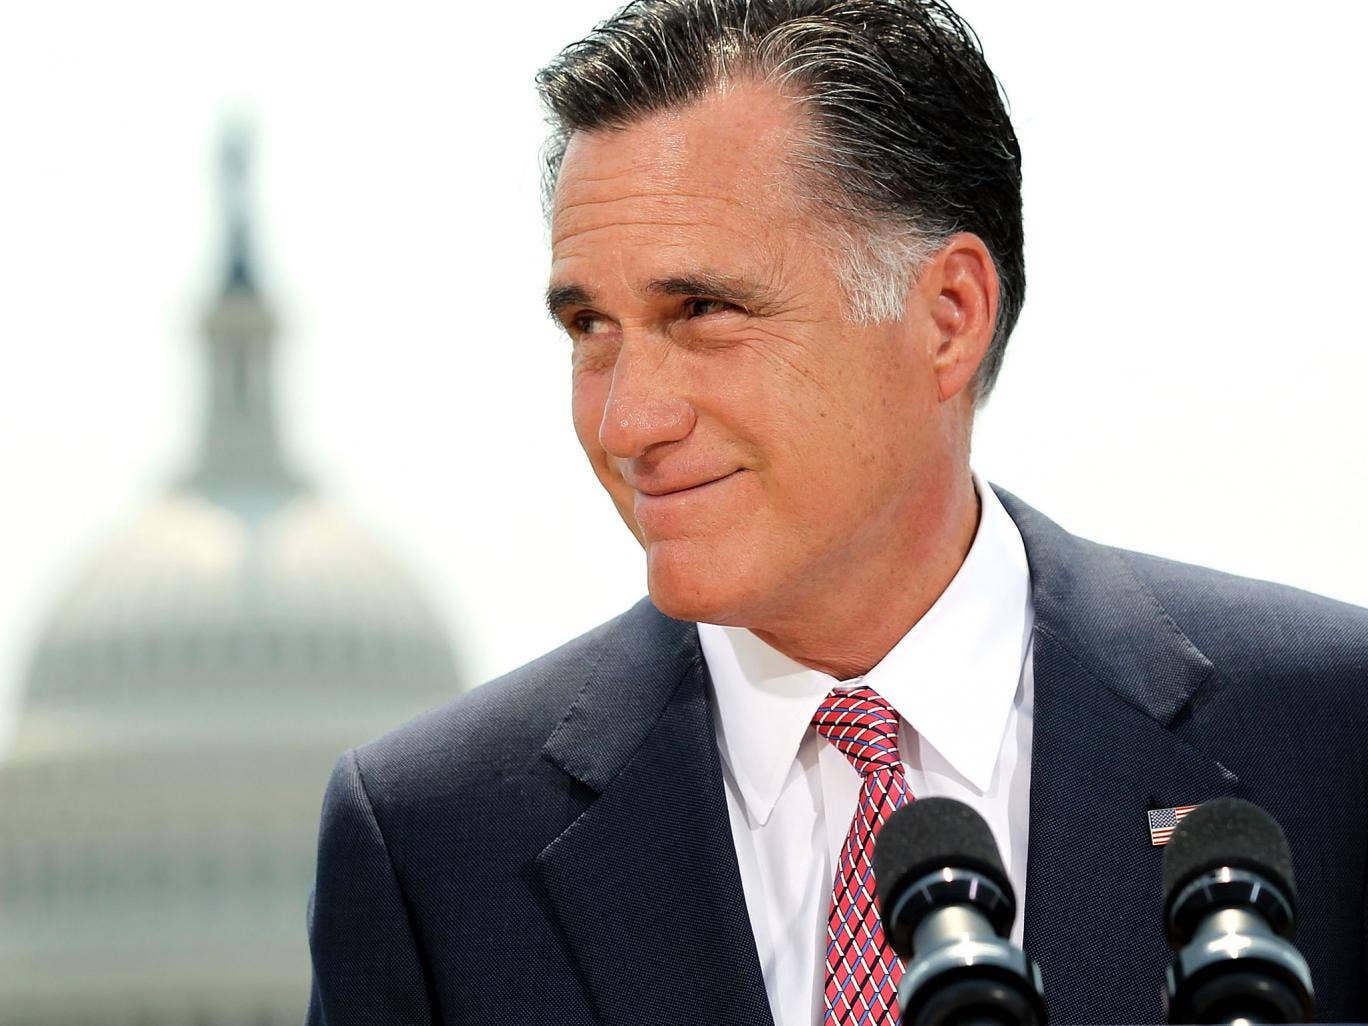 Mitt Romney blames his losses on Obama's 'gifts'